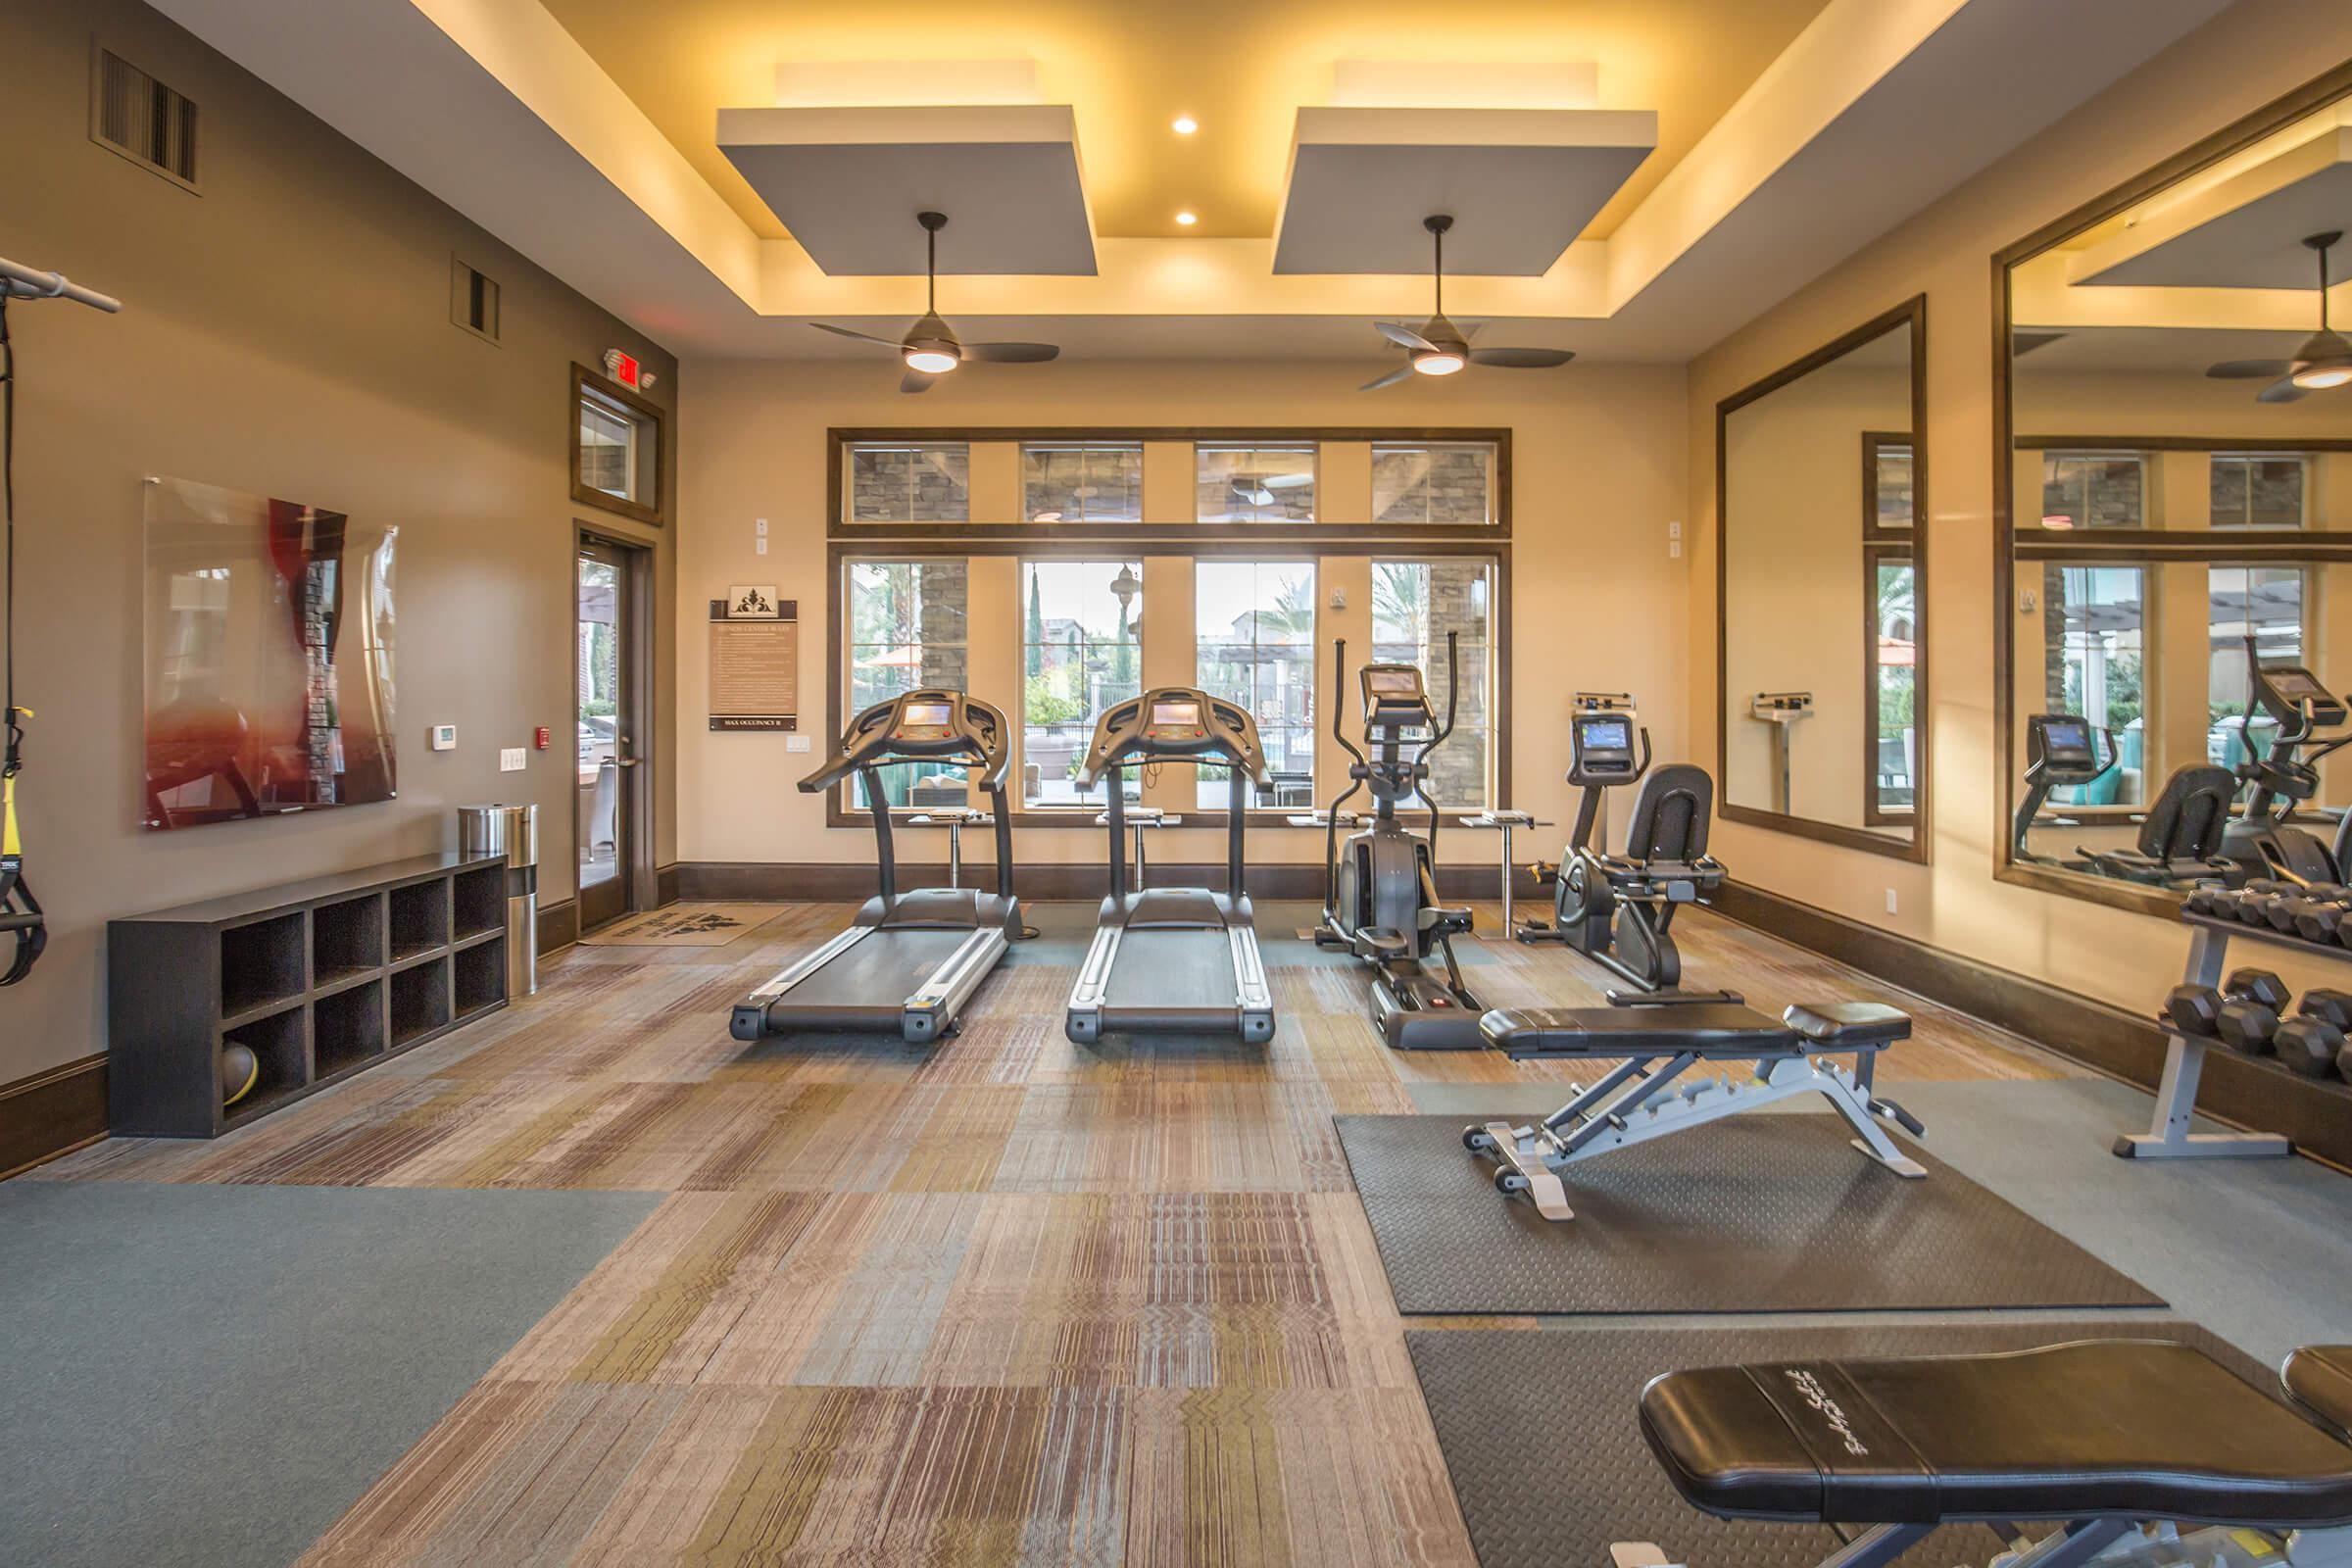 Work-out equipment in The Retreat at Riverlakes gym